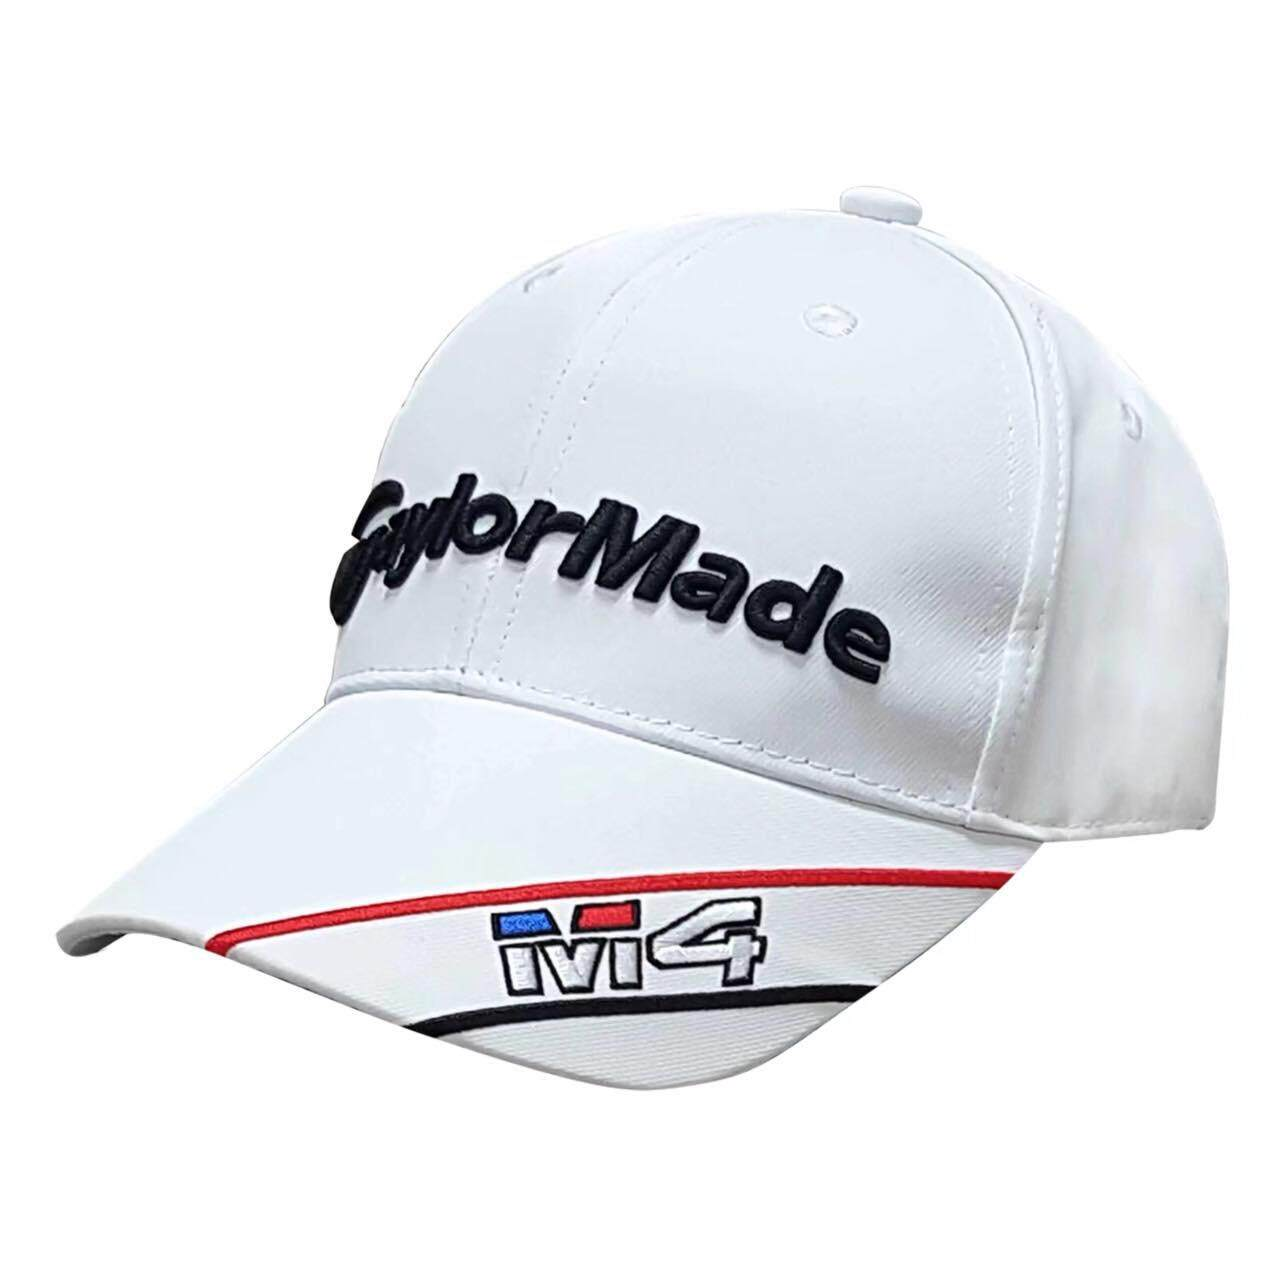 GOLF CAP Clip with Magnetic Ball Marker ( TAYLORMADE-M4 )  Free Size หมวกกอล์ฟ แถมมาร์คเกอร์ในตัว CB001 หมวก สี : White Size Int :  One size